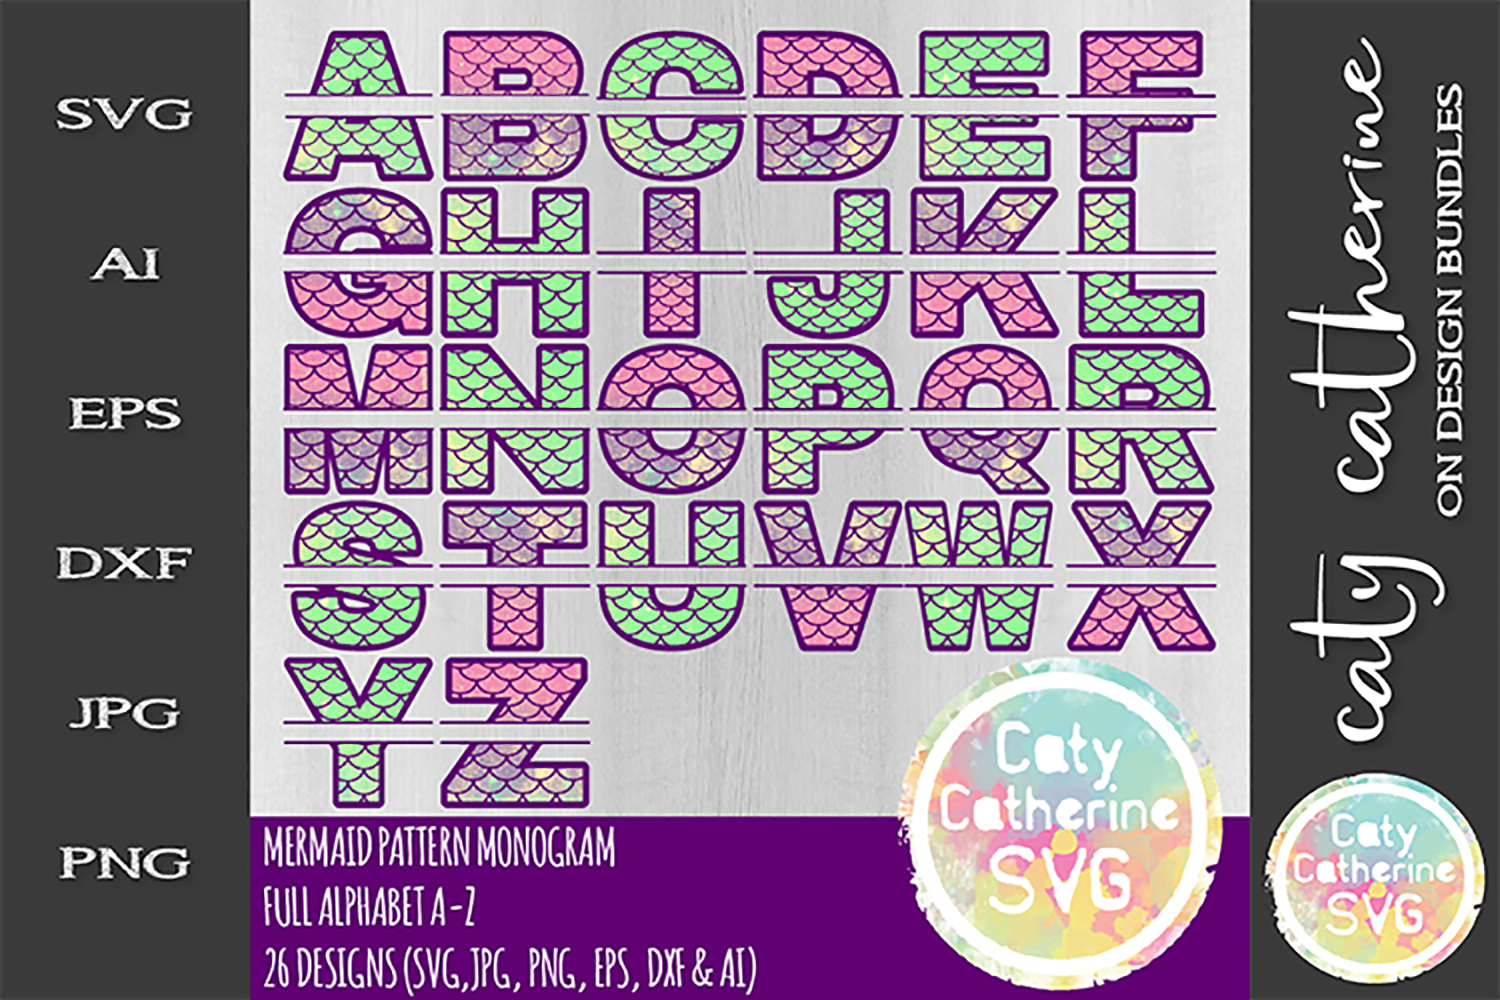 Mermaid Pattern Monogram SVG Full Alphabet A-Z SVG Cut File example image 1